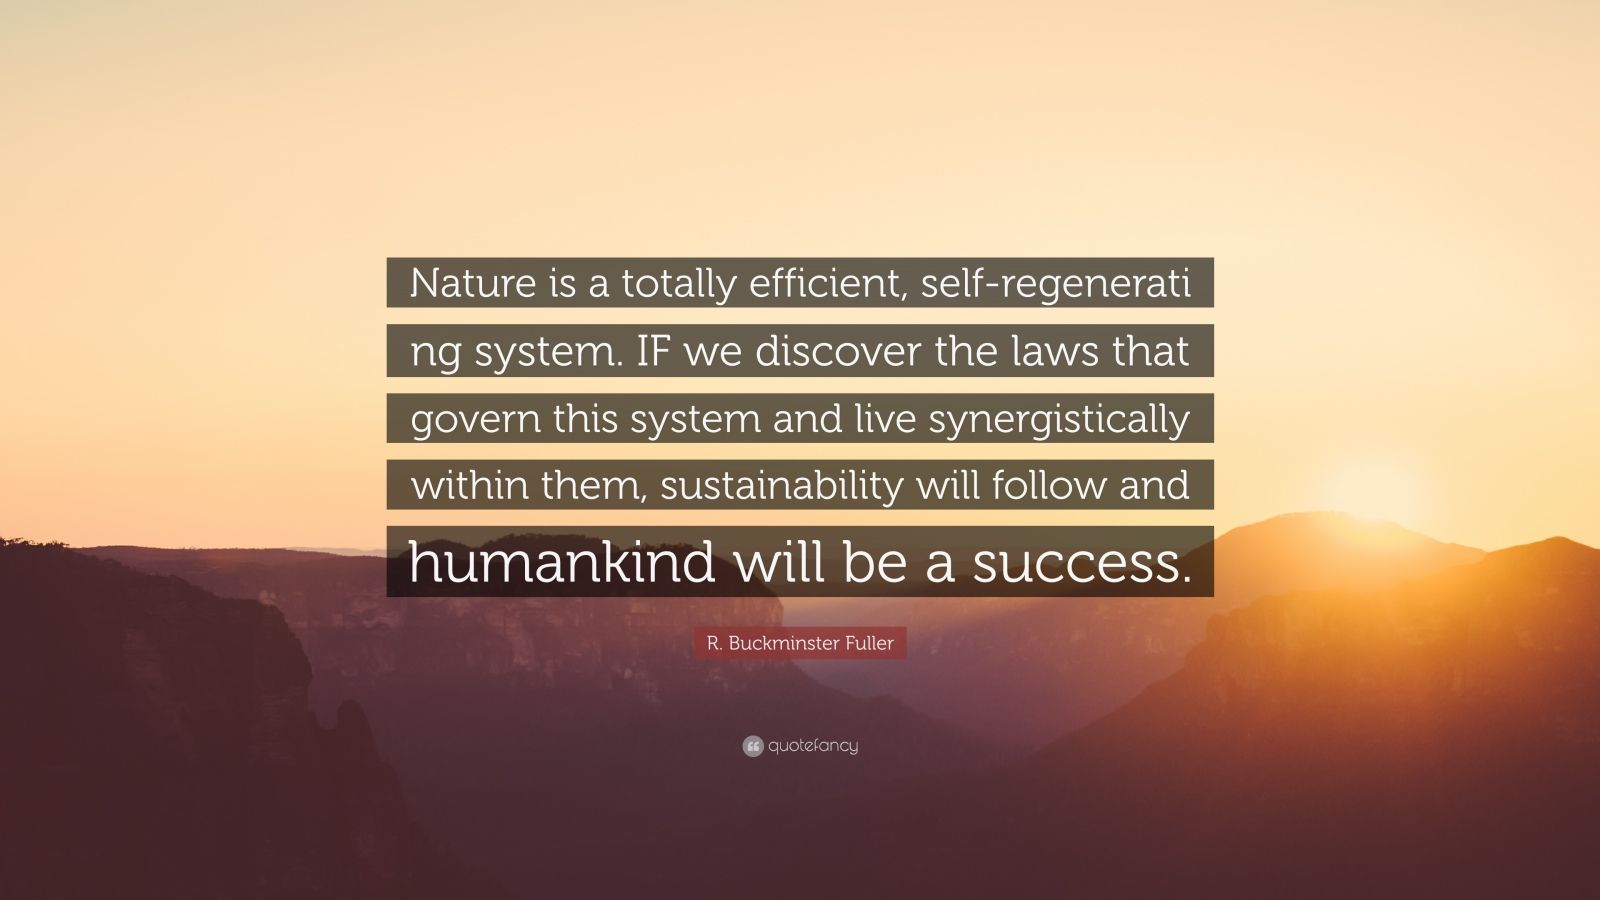 "R. Buckminster Fuller Quote: ""Nature is a totally efficient, self-regenerati ng system. IF we discover the laws that govern this system and live synergistically within them, sustainability will follow and humankind will be a success."""